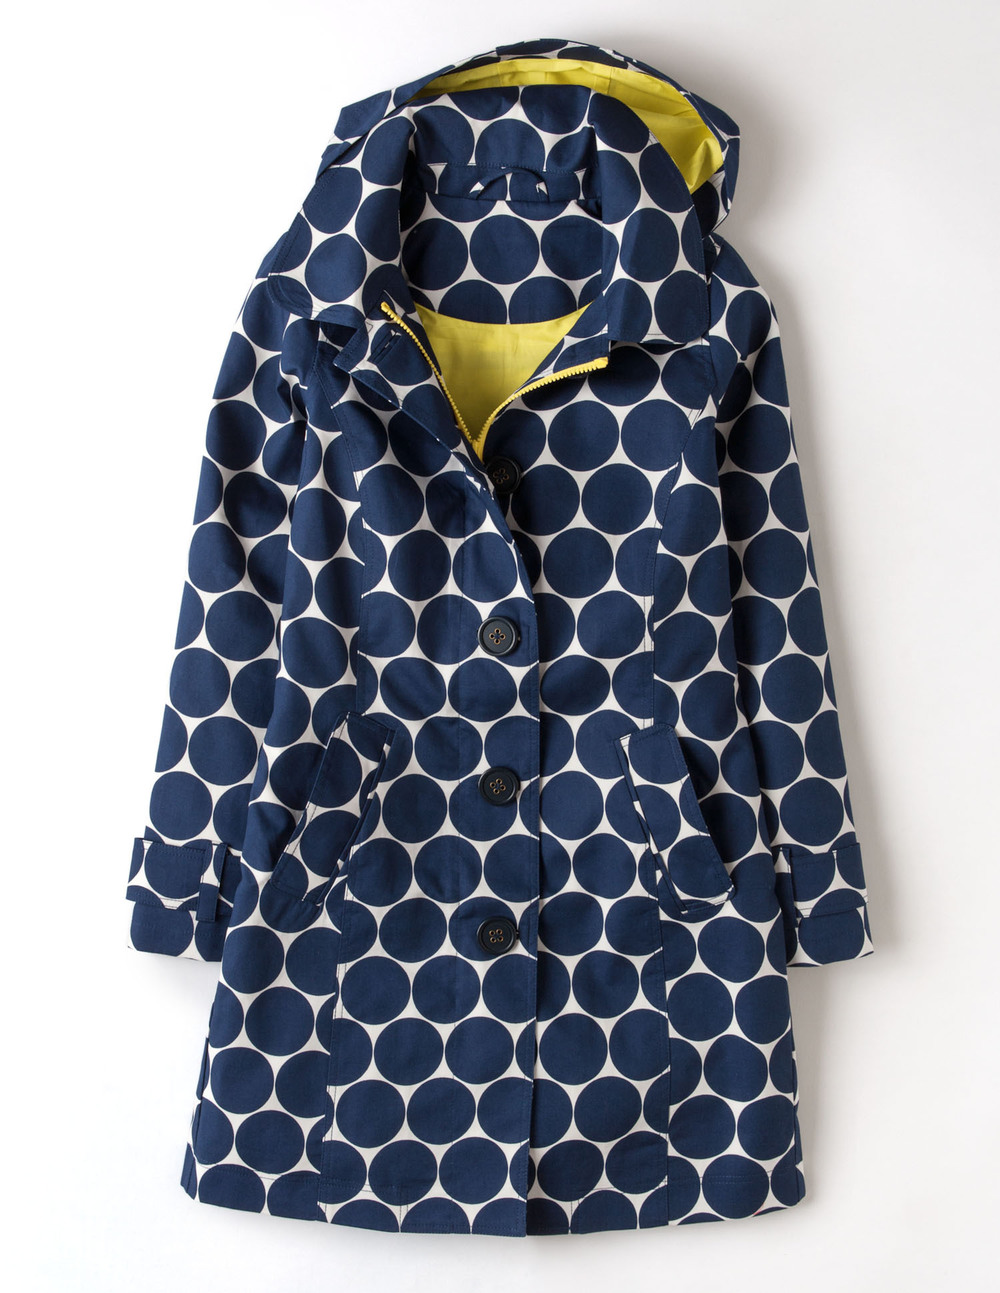 Boden Rainy Day Mac. Available in multiple colors and prints. Boden. $178.